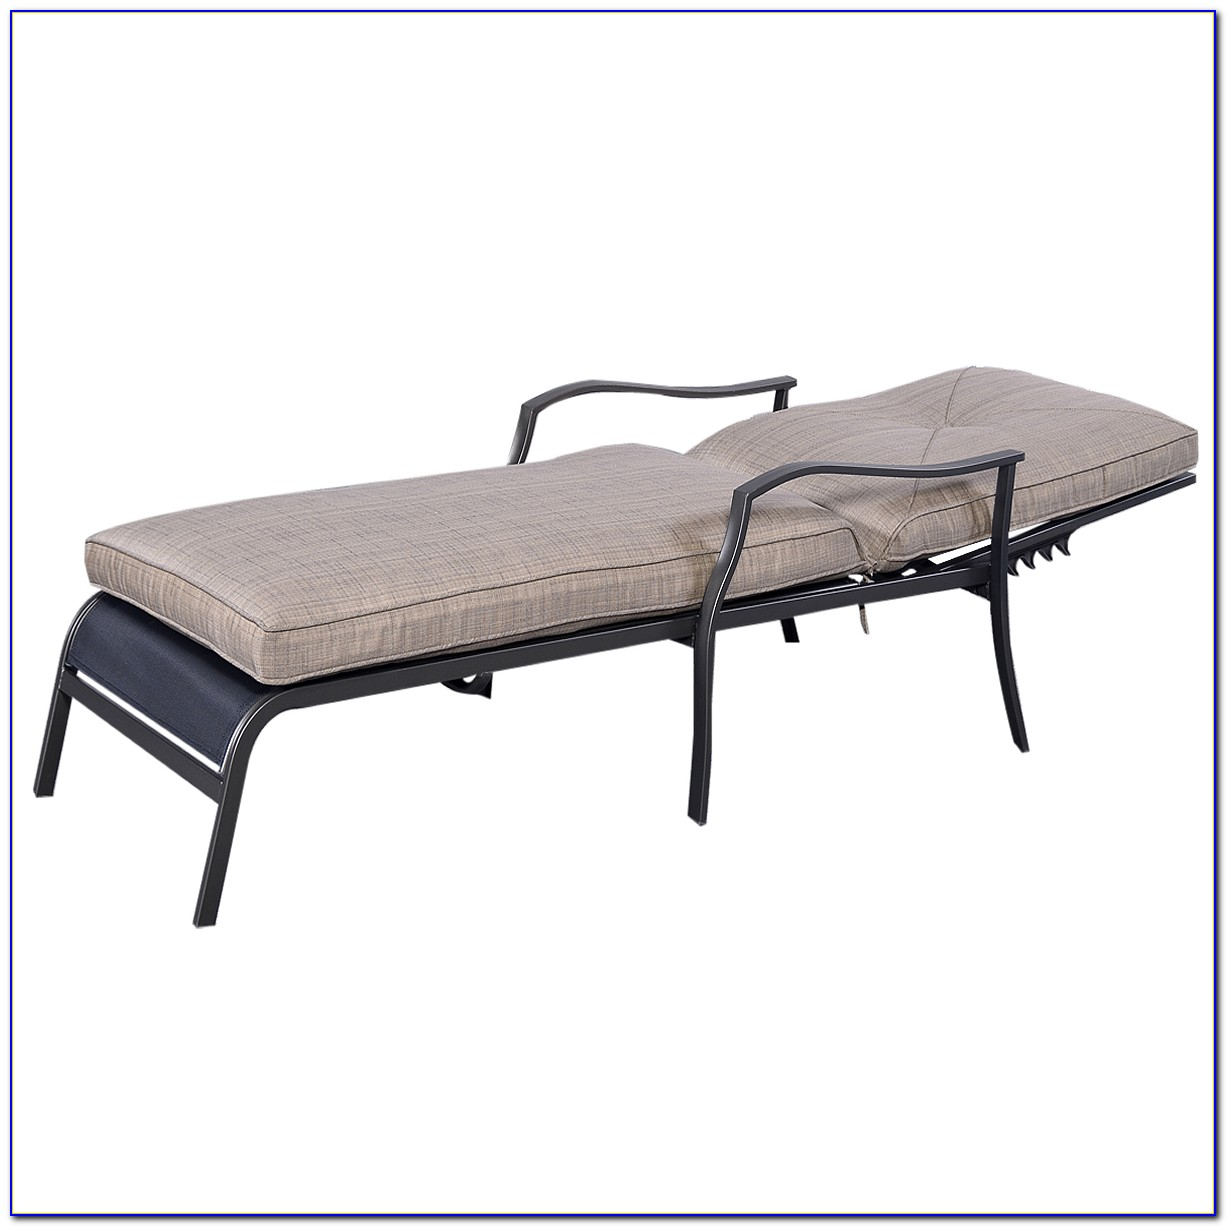 Outdoor Chaise Lounge Chairs Costco